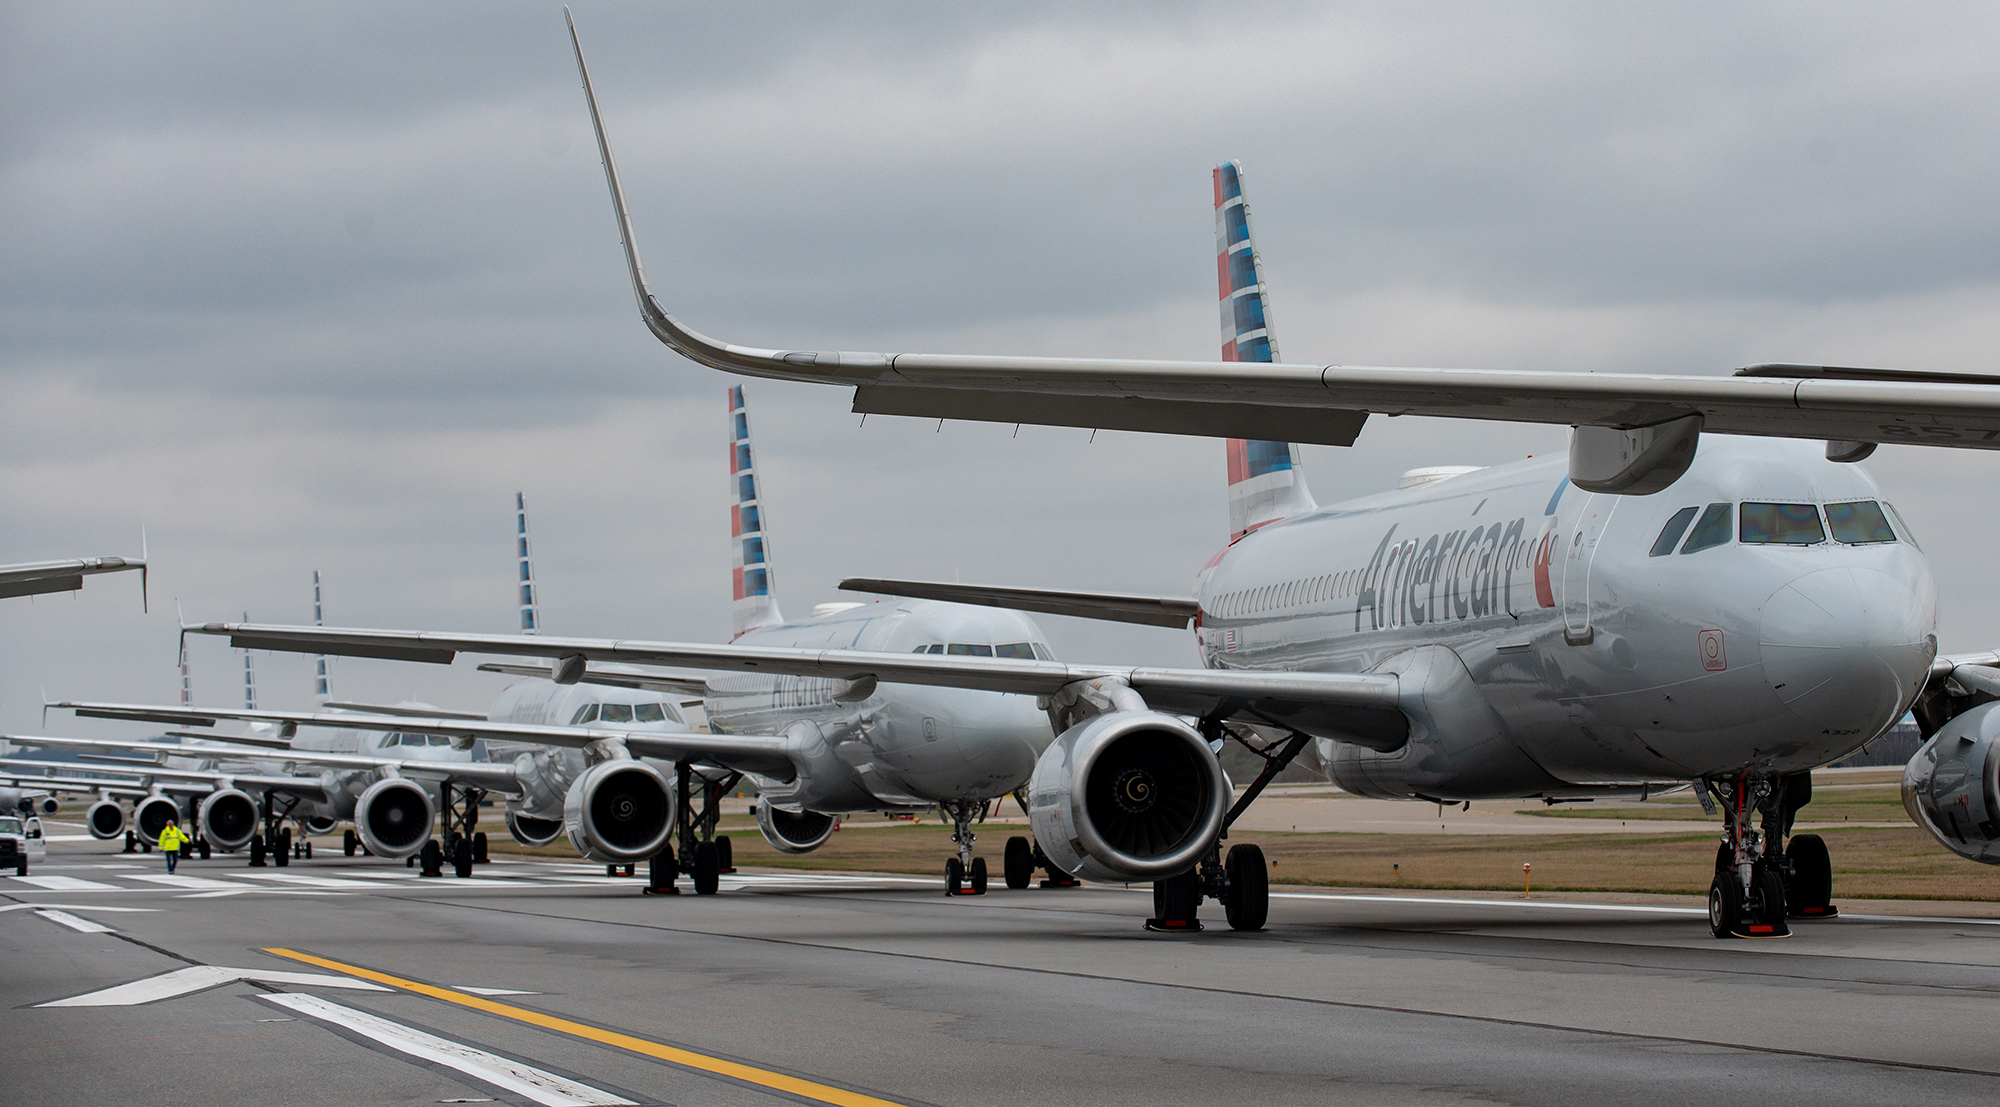 Jets are parked on runway 28 at the Pittsburgh International Airport on March 27, in Pittsburgh, Pennsylvania.